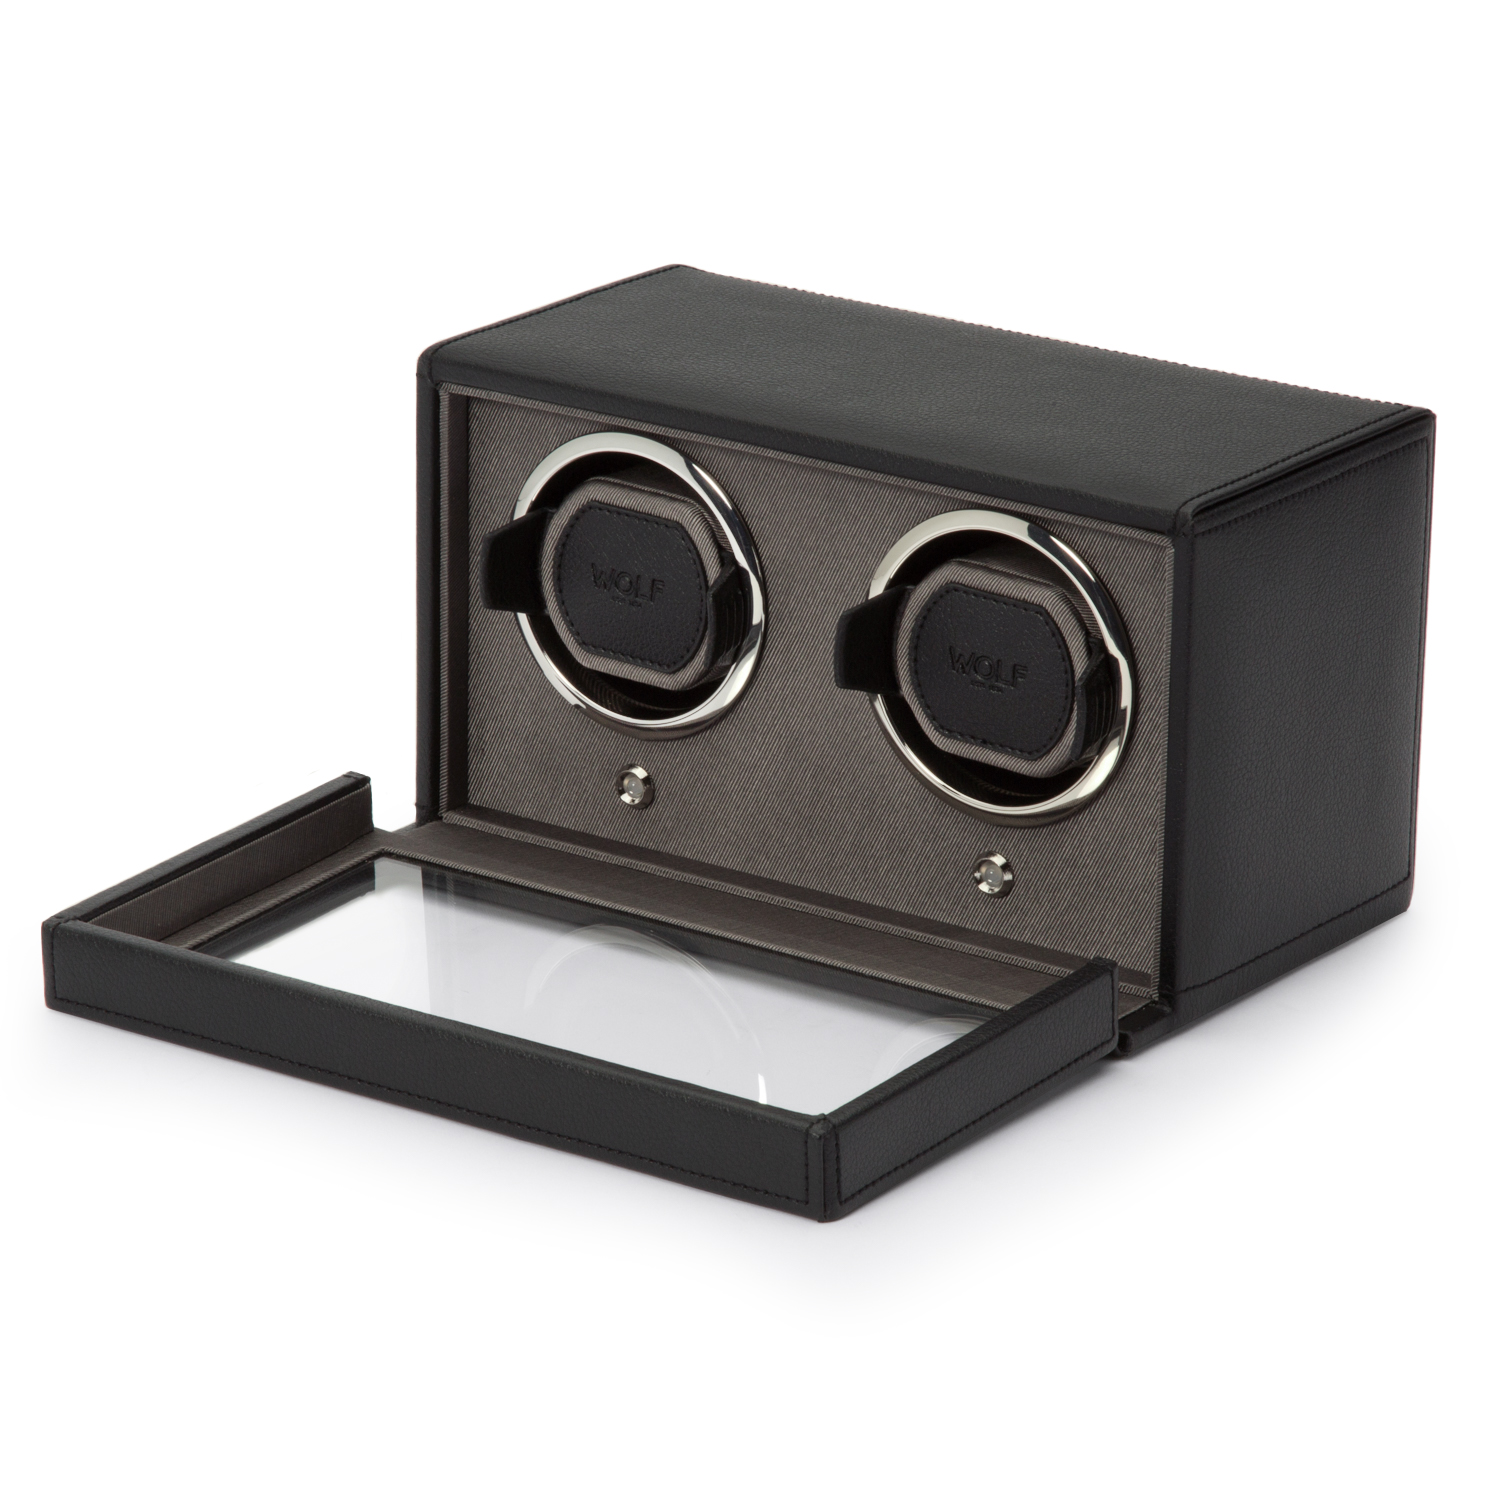 WOLF Double Cub Watch Winder w/ Cover in Black Faux Leather